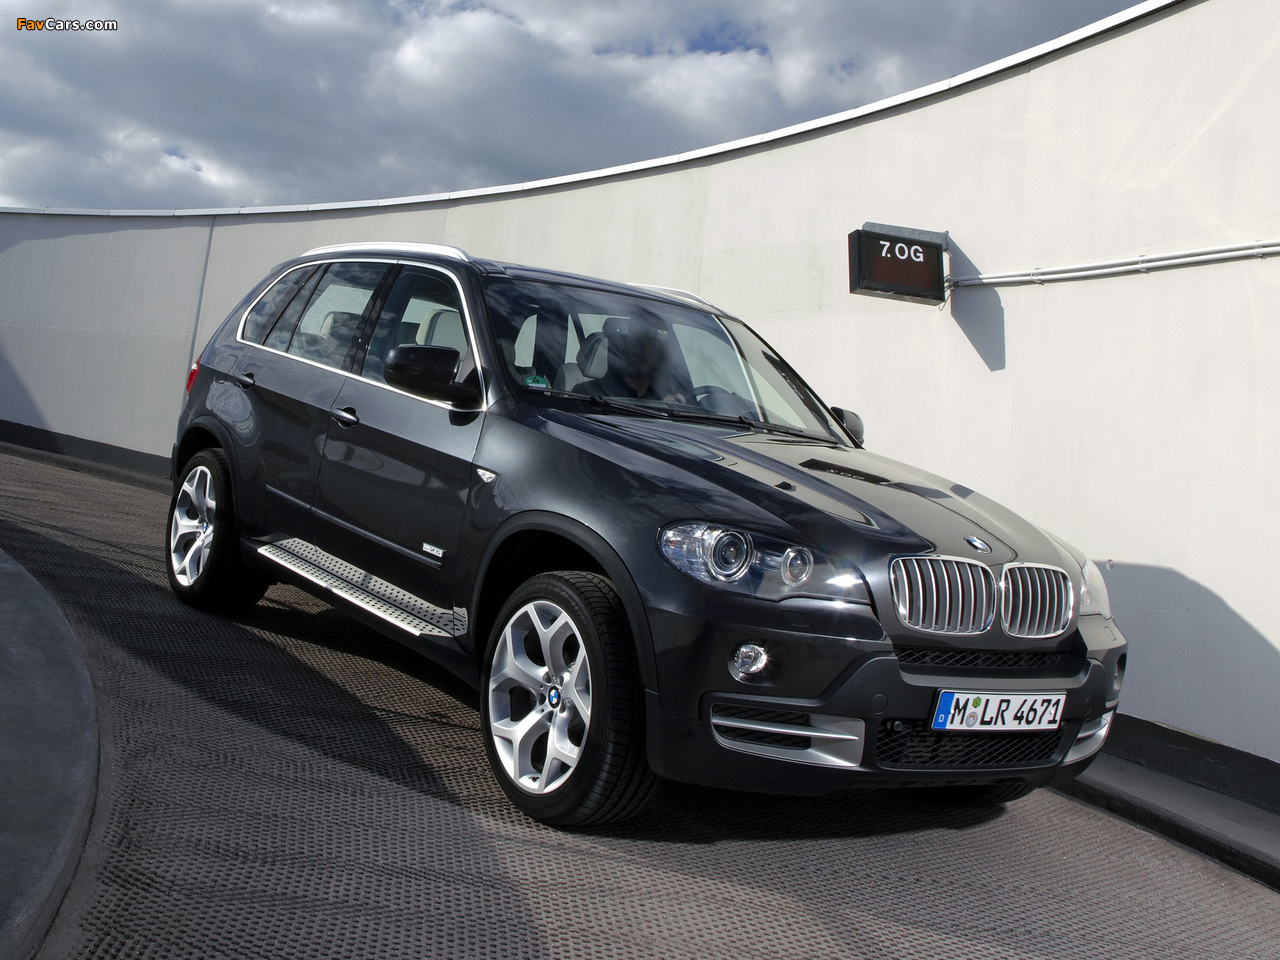 Photos Of Bmw X5 Xdrive35d 10 Year Edition E70 2009 1280x960